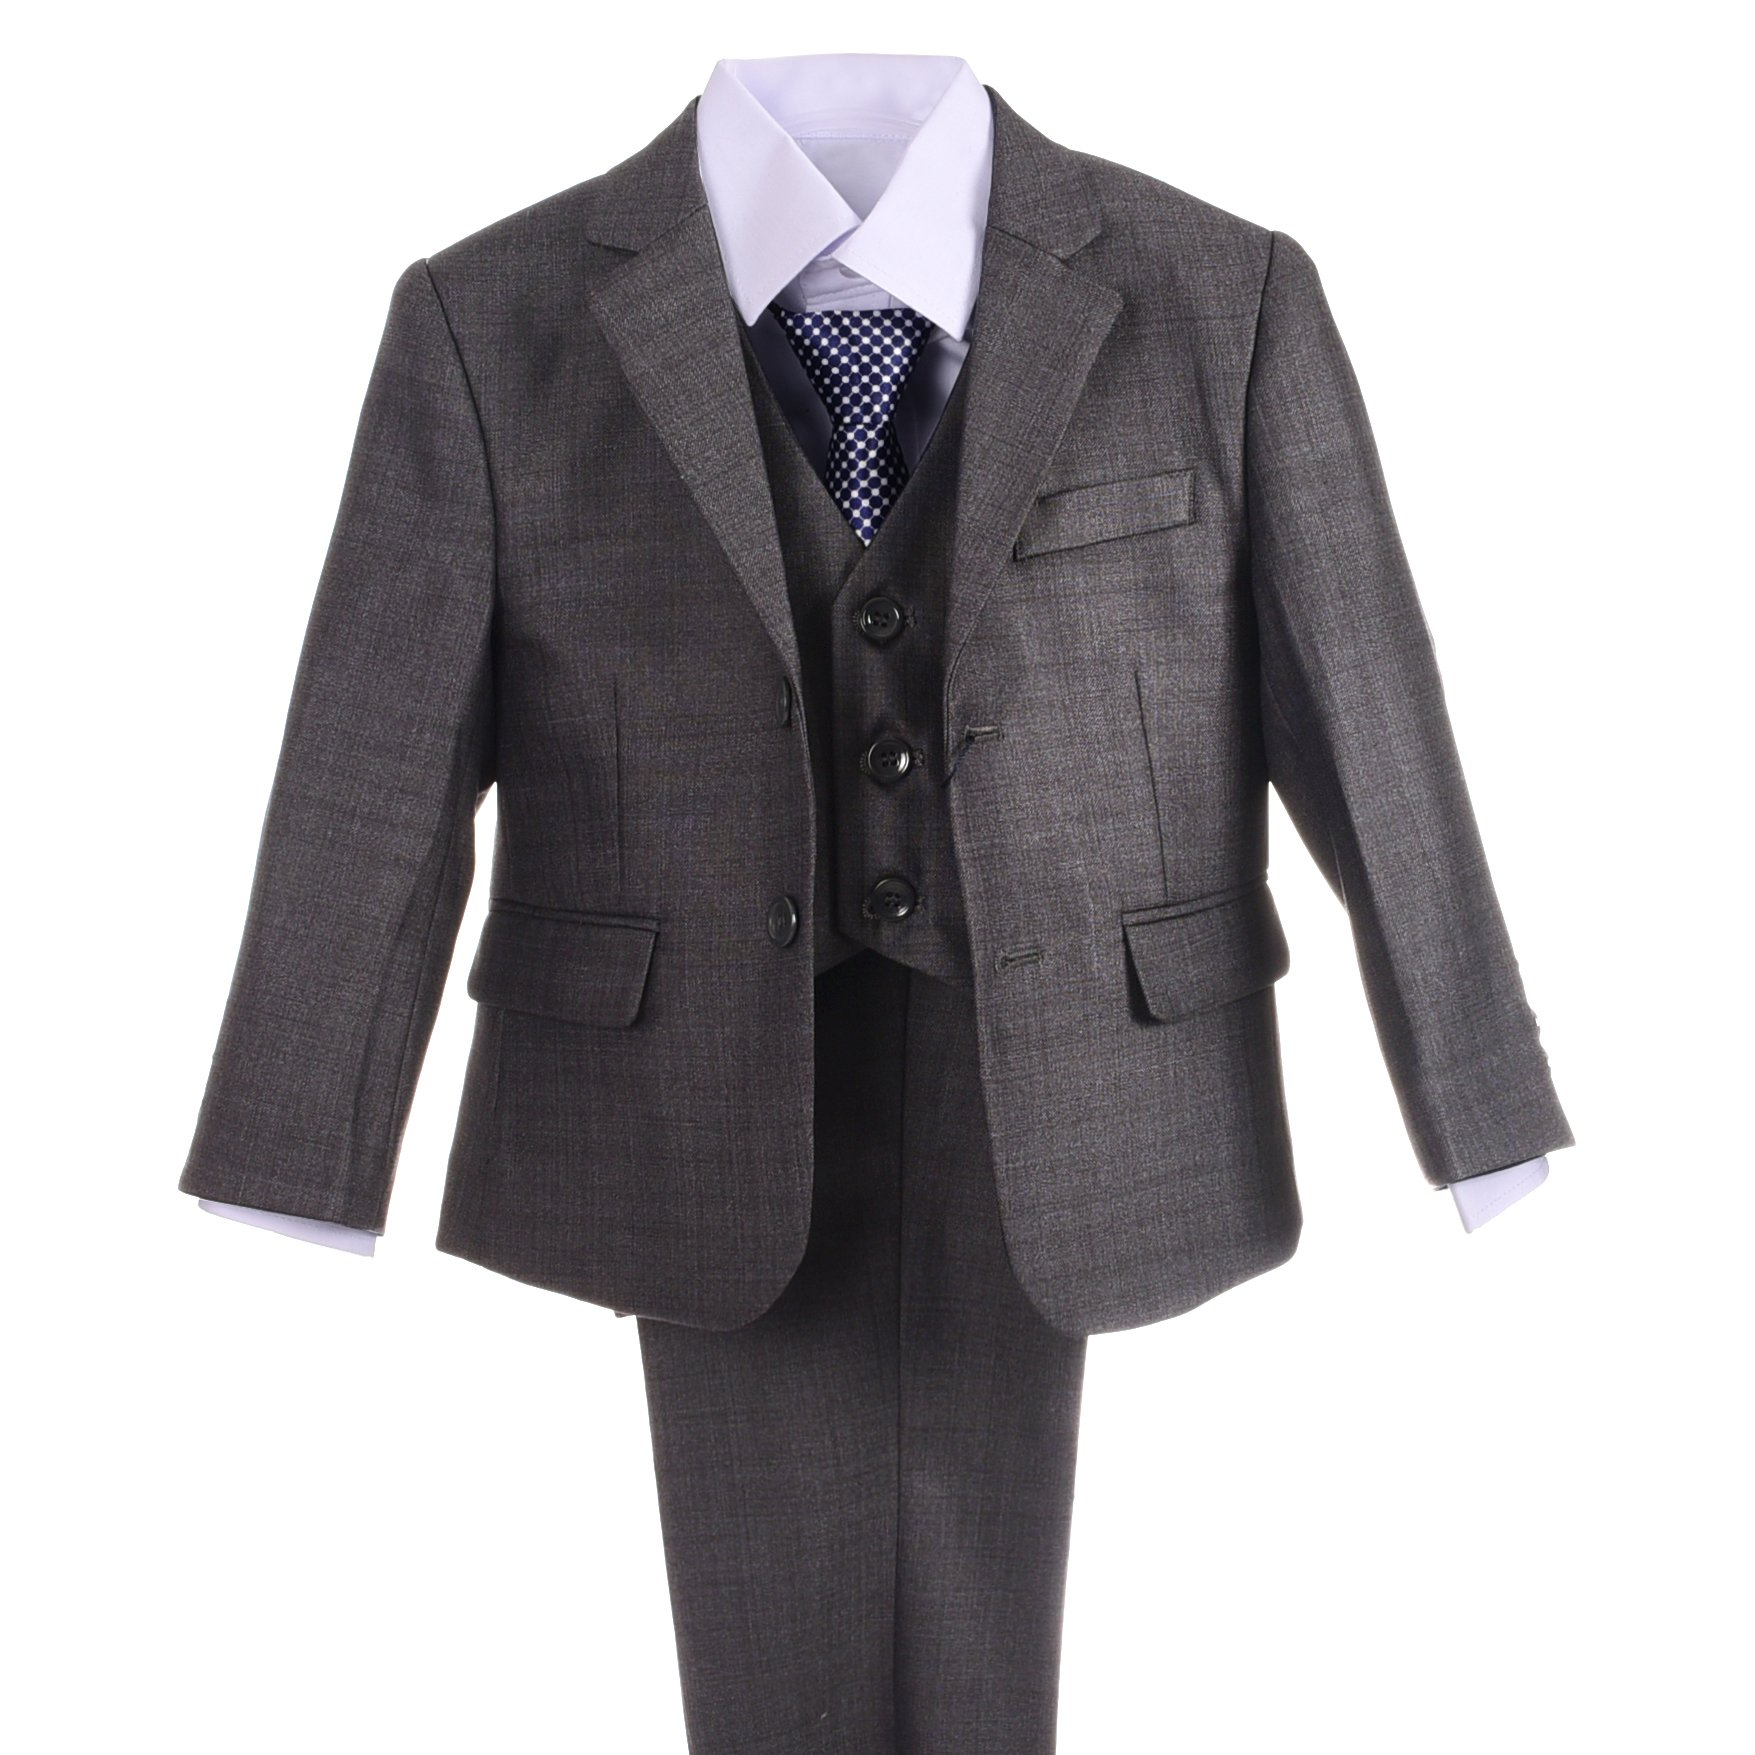 Dressy Daisy Boys Formal Dress Suits Wedding Outfit Grey Suits 5 Pcs Set Modern Fit Size 4T Grey